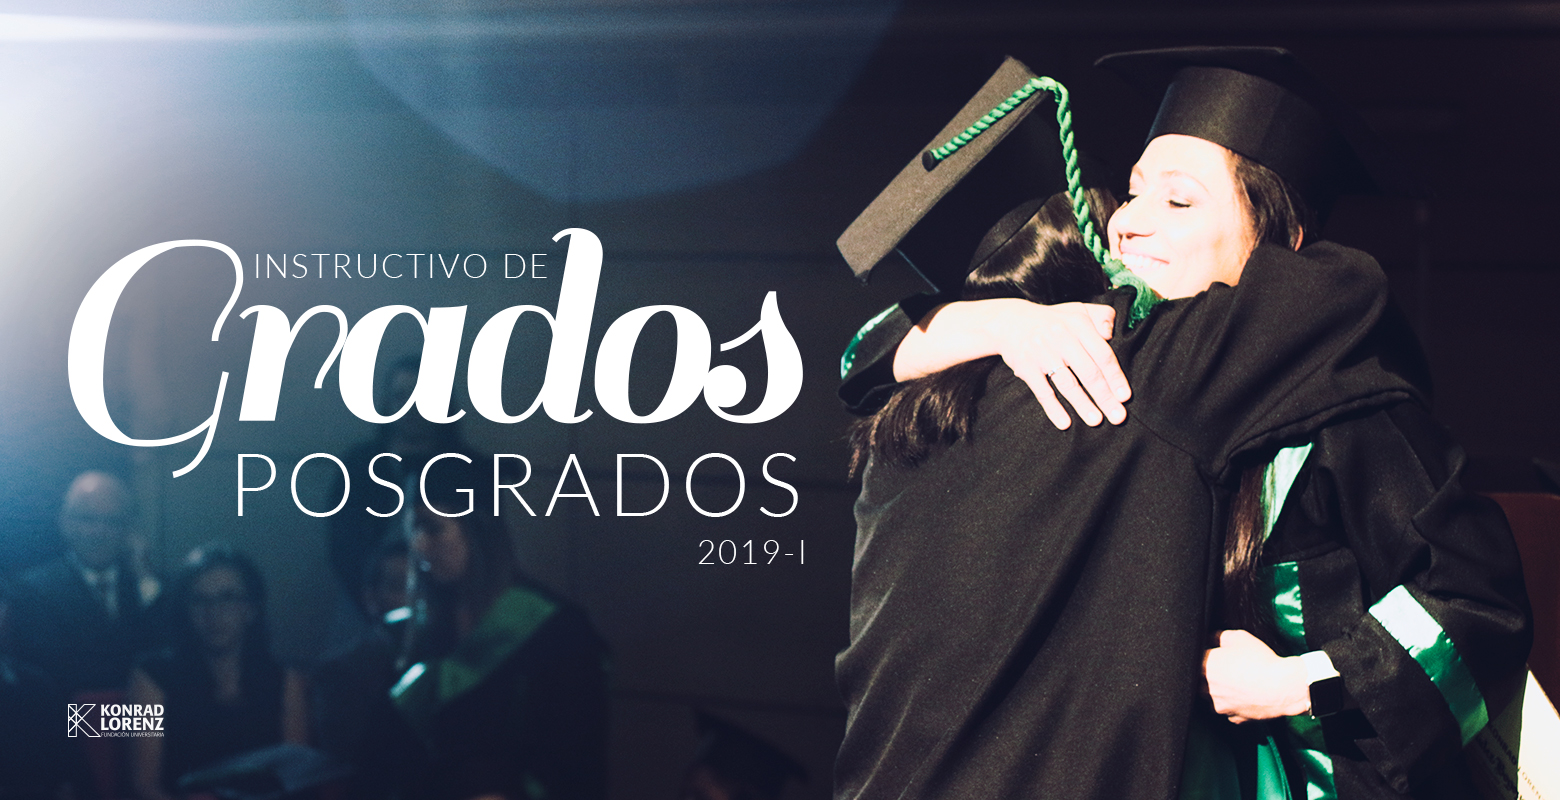 Instructivo de Grados 2019-1 Posgrados